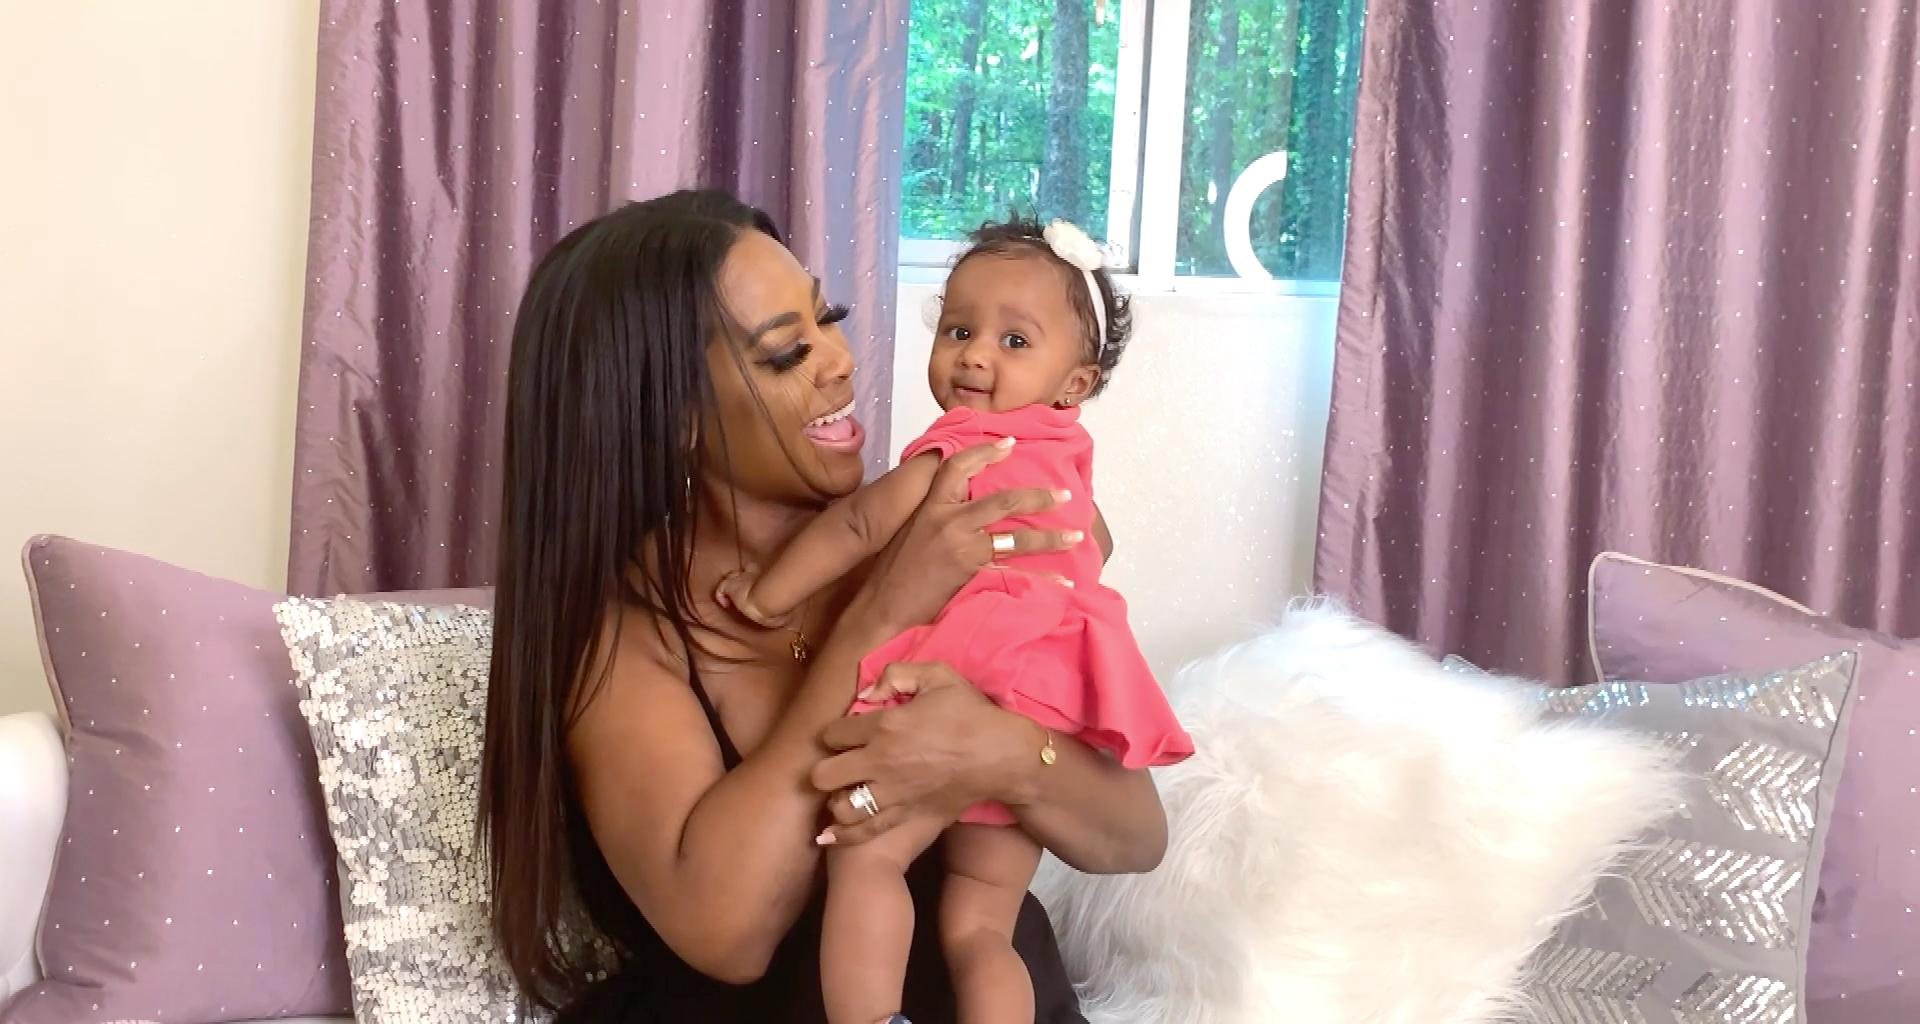 Kenya Moore's Baby Brooklyn Daly Thinks She's A Comedian - See The Video